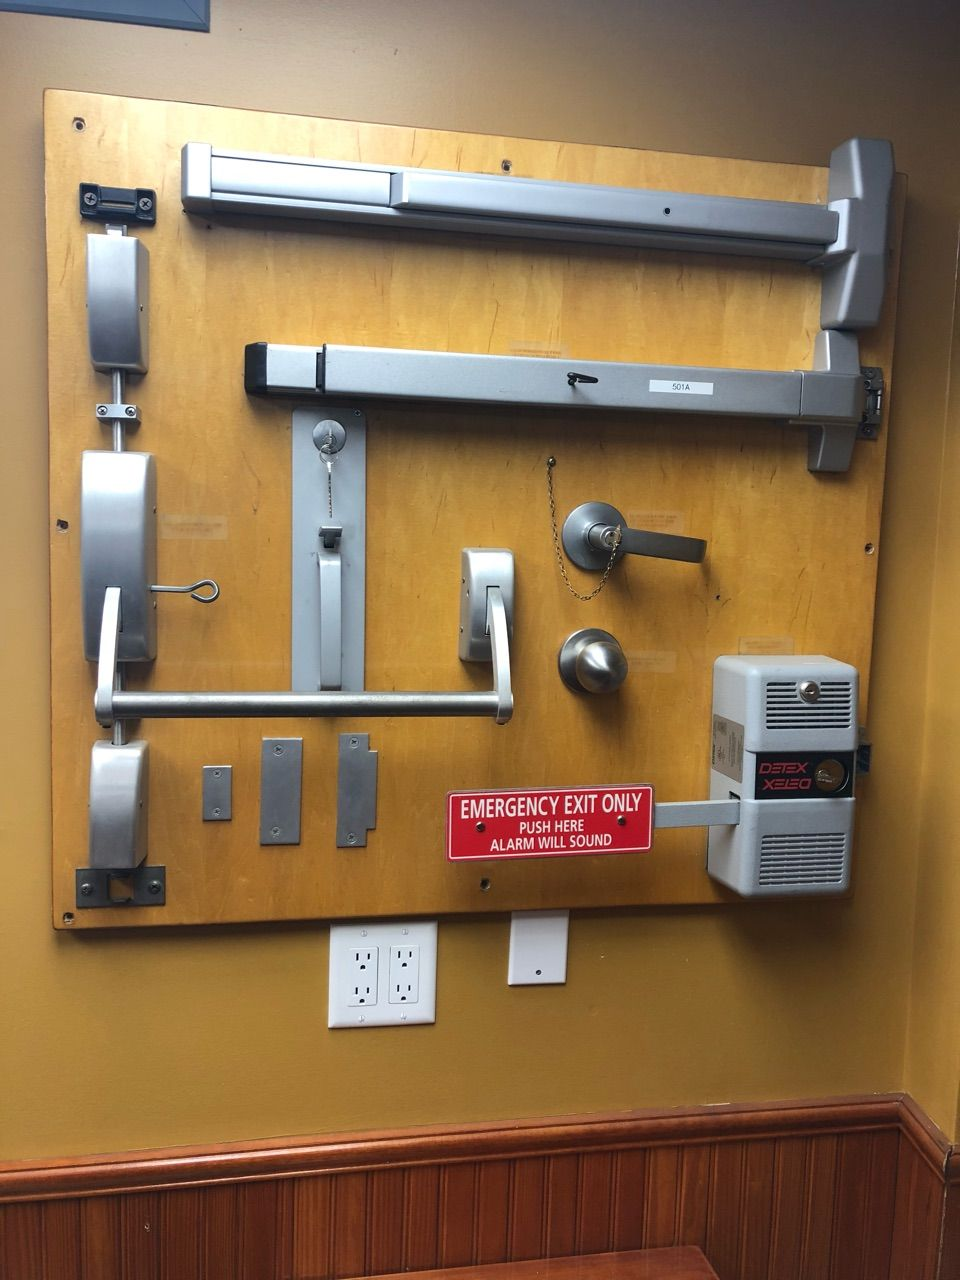 If You Need To Install Push Bars Crash Bars Panic Bars And Alarmed Exit Device On Your Commercial Prop Commercial Door Hardware Locksmith Commercial Property